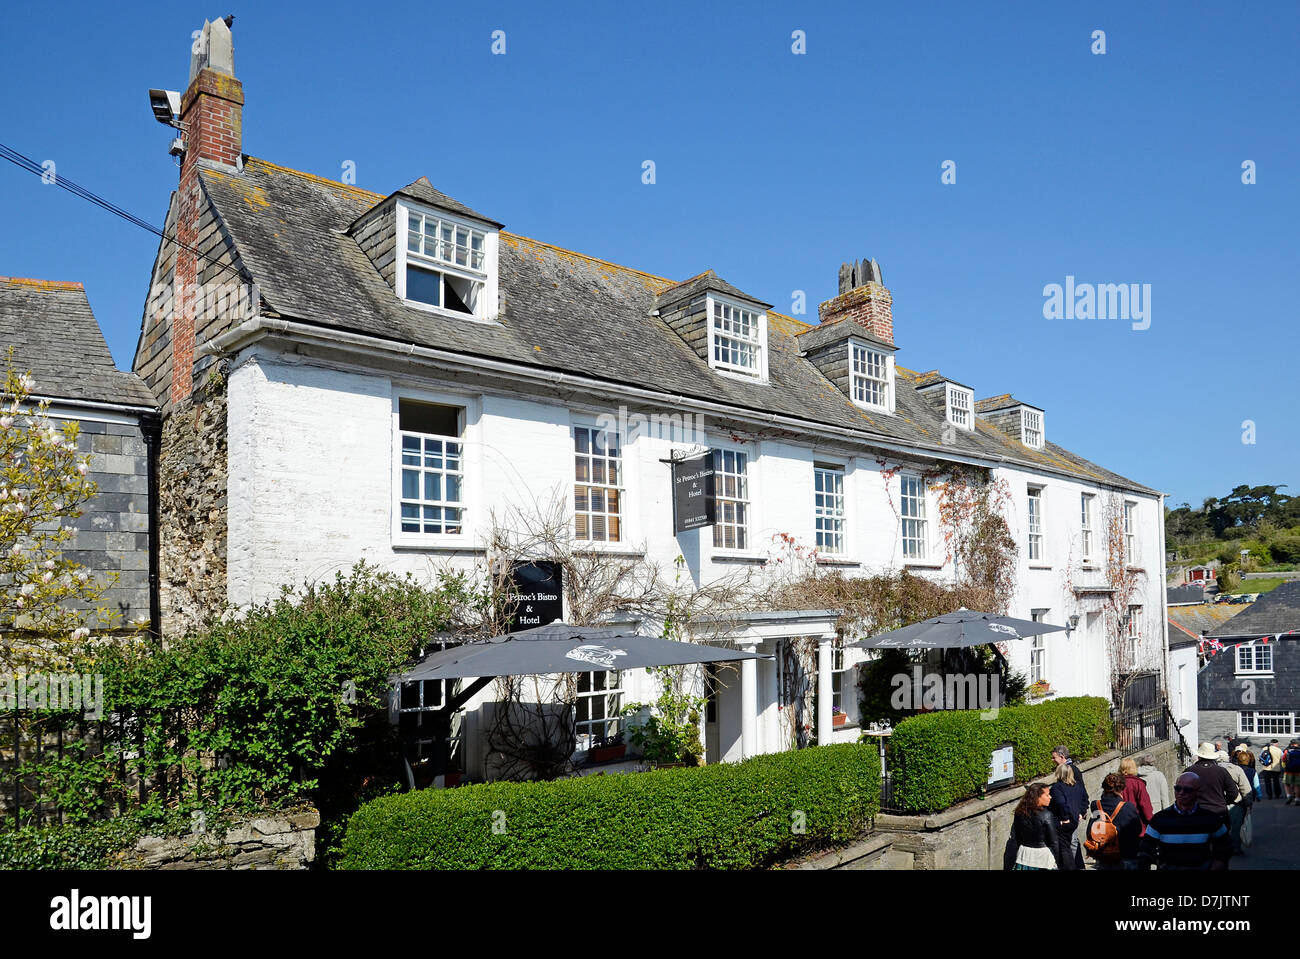 St.Petrocs bistro owned by Rick Stein in Padstow, Cornwall, UK - Stock Image